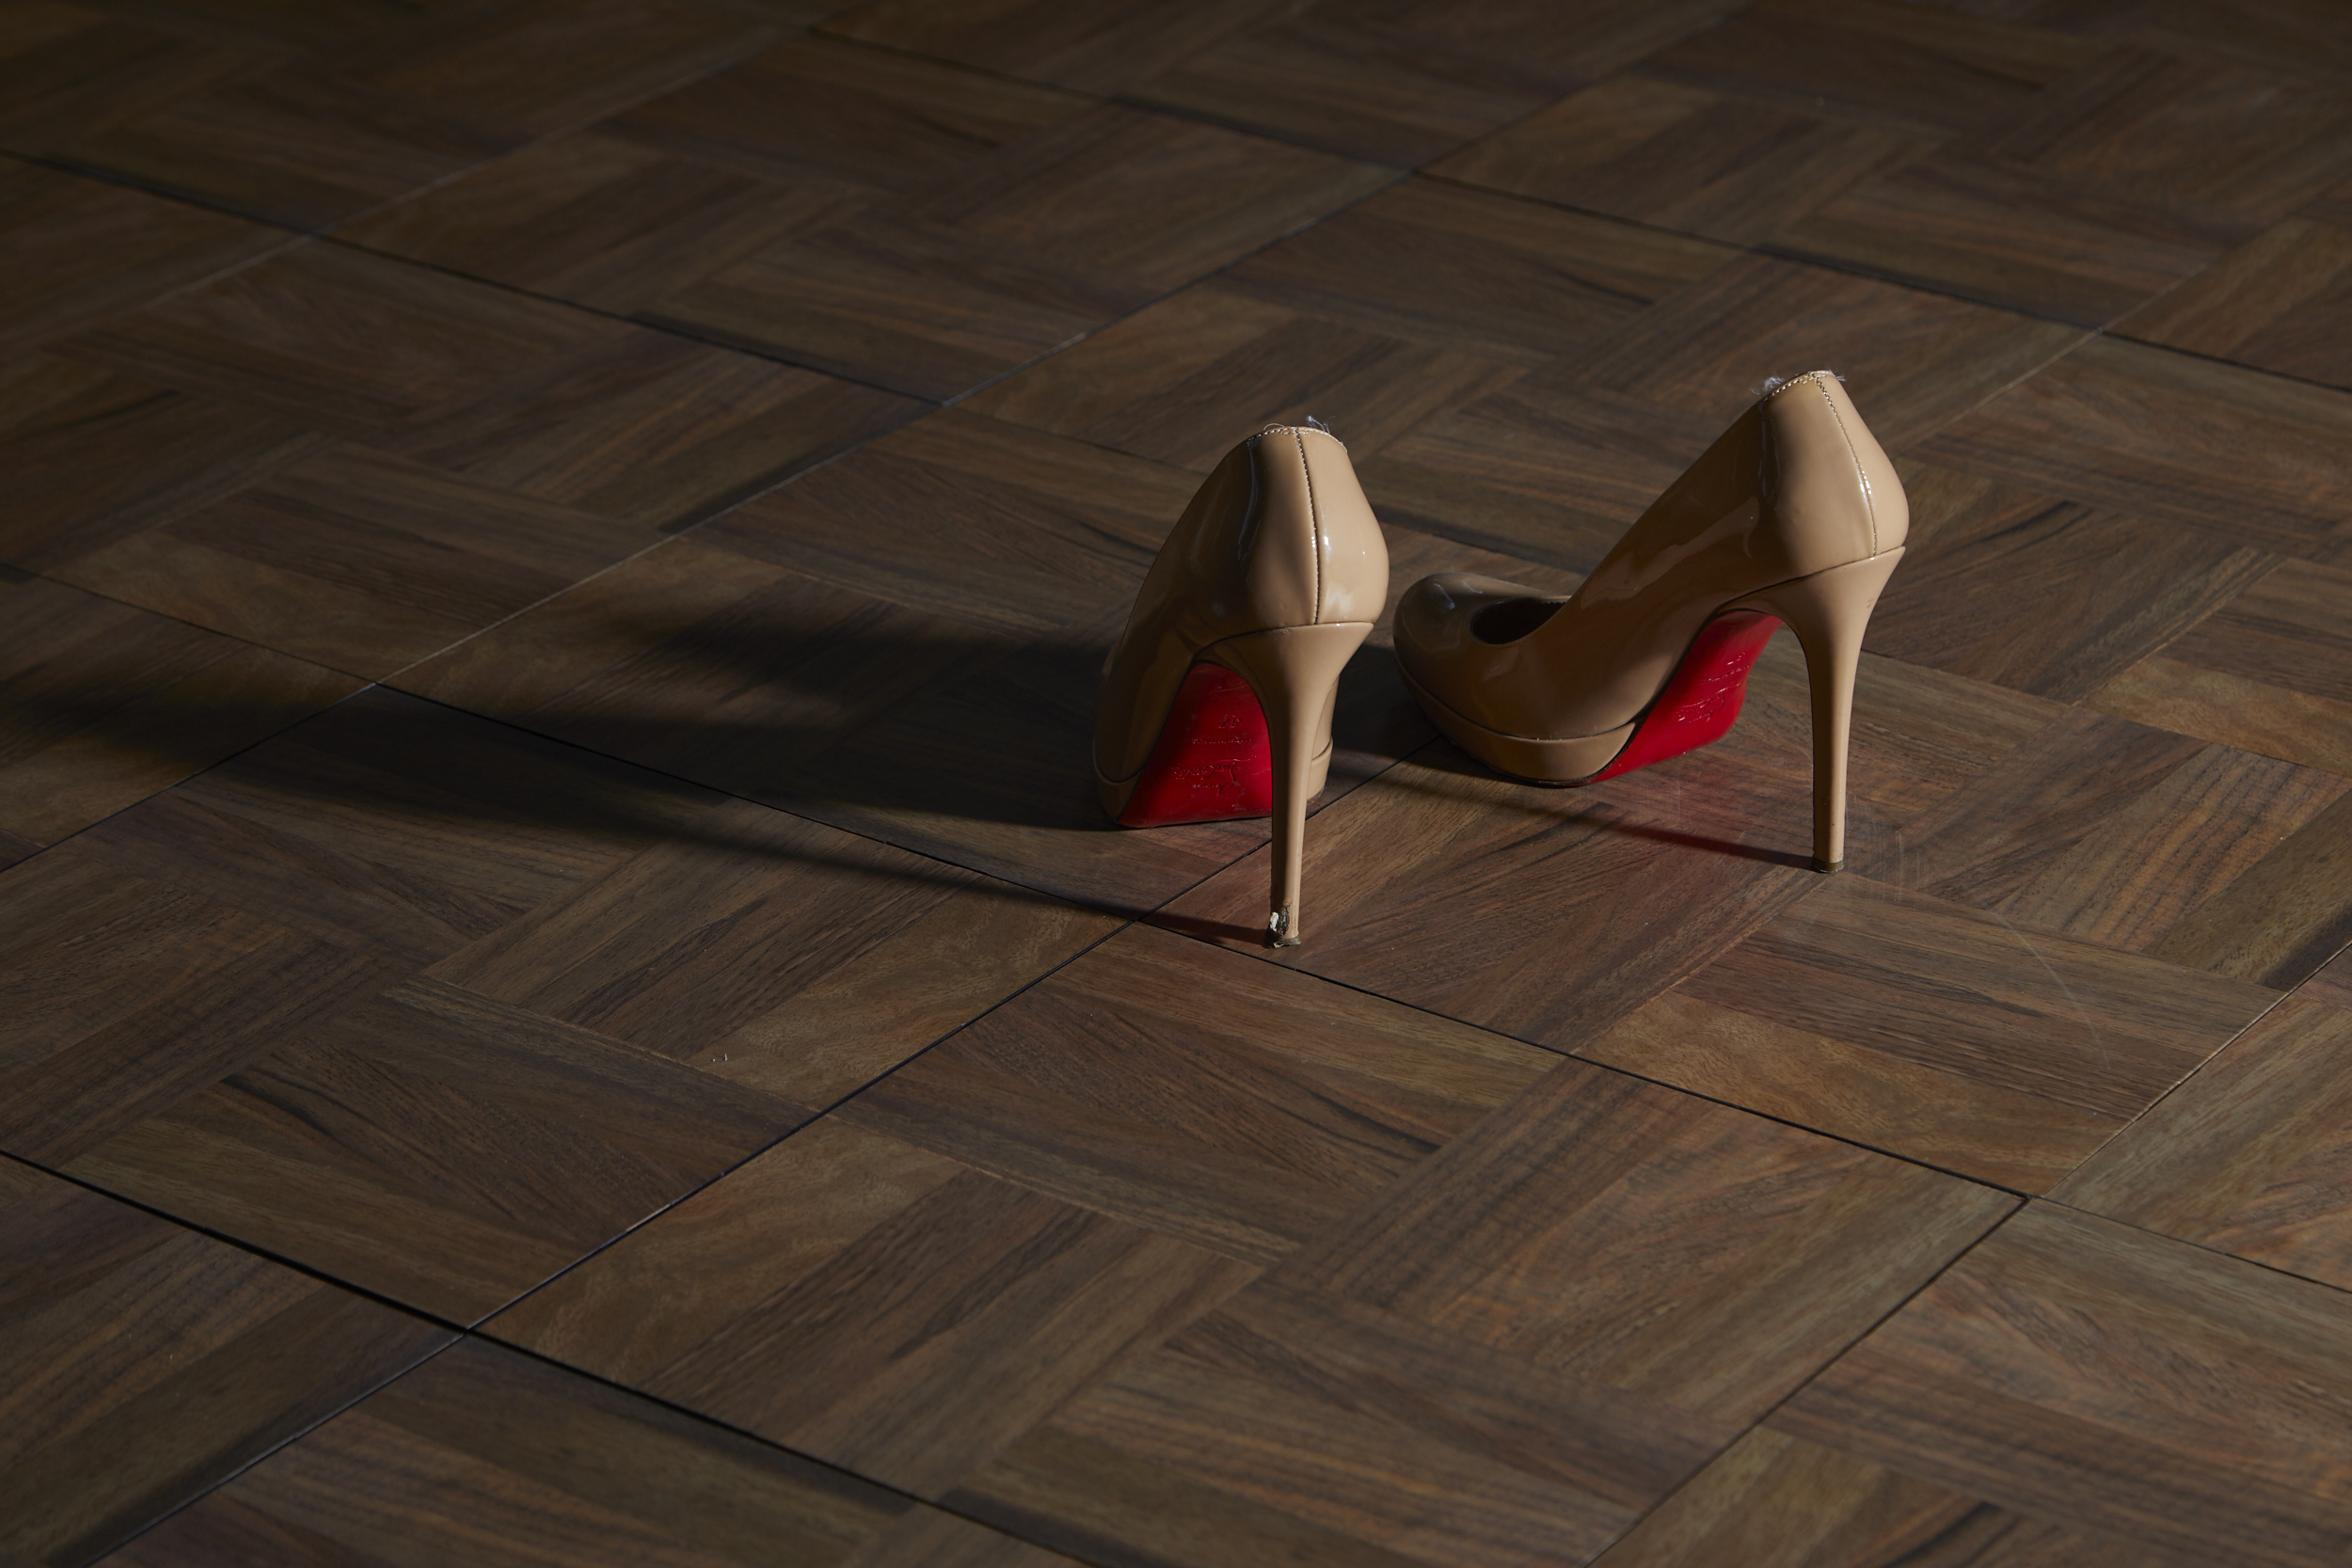 Realistic looking wood finishes allow you to build indoor and outdoor dance floors and event floors